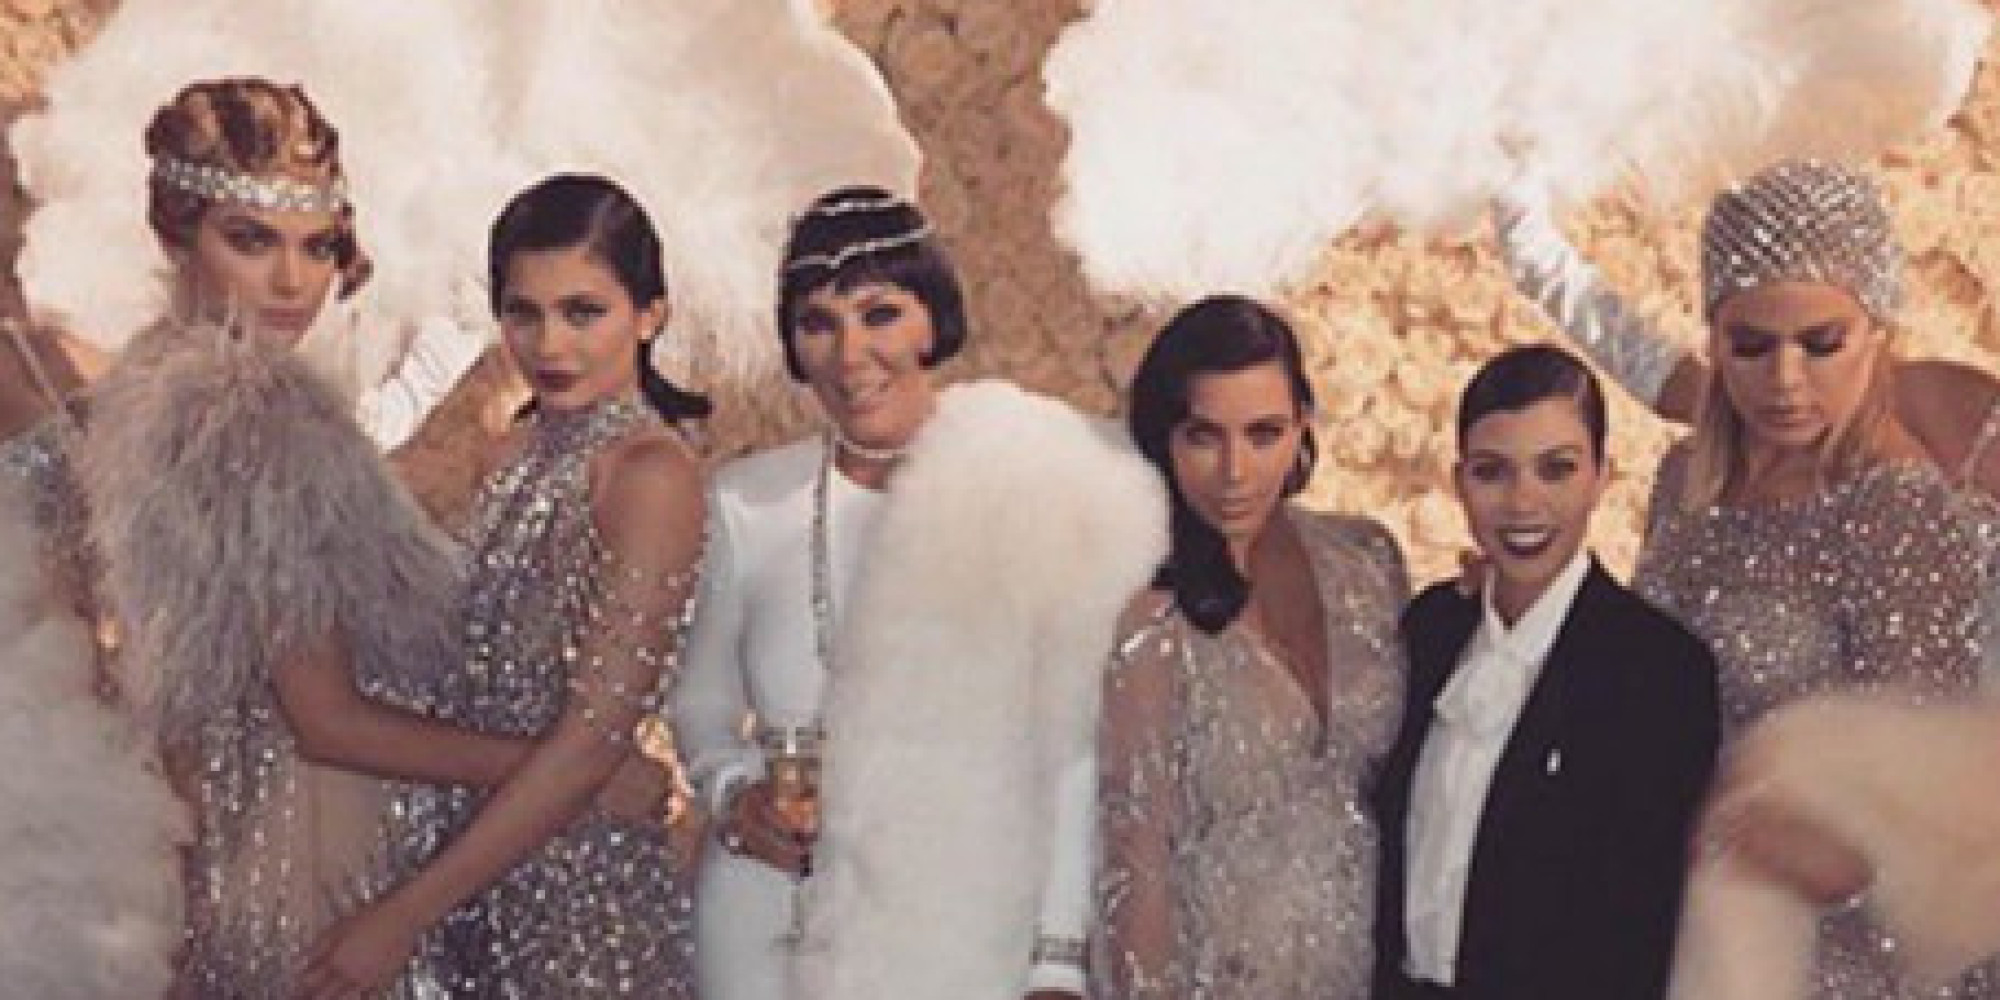 kardashian christmas cards over the years - Chrismast Cards Ideas